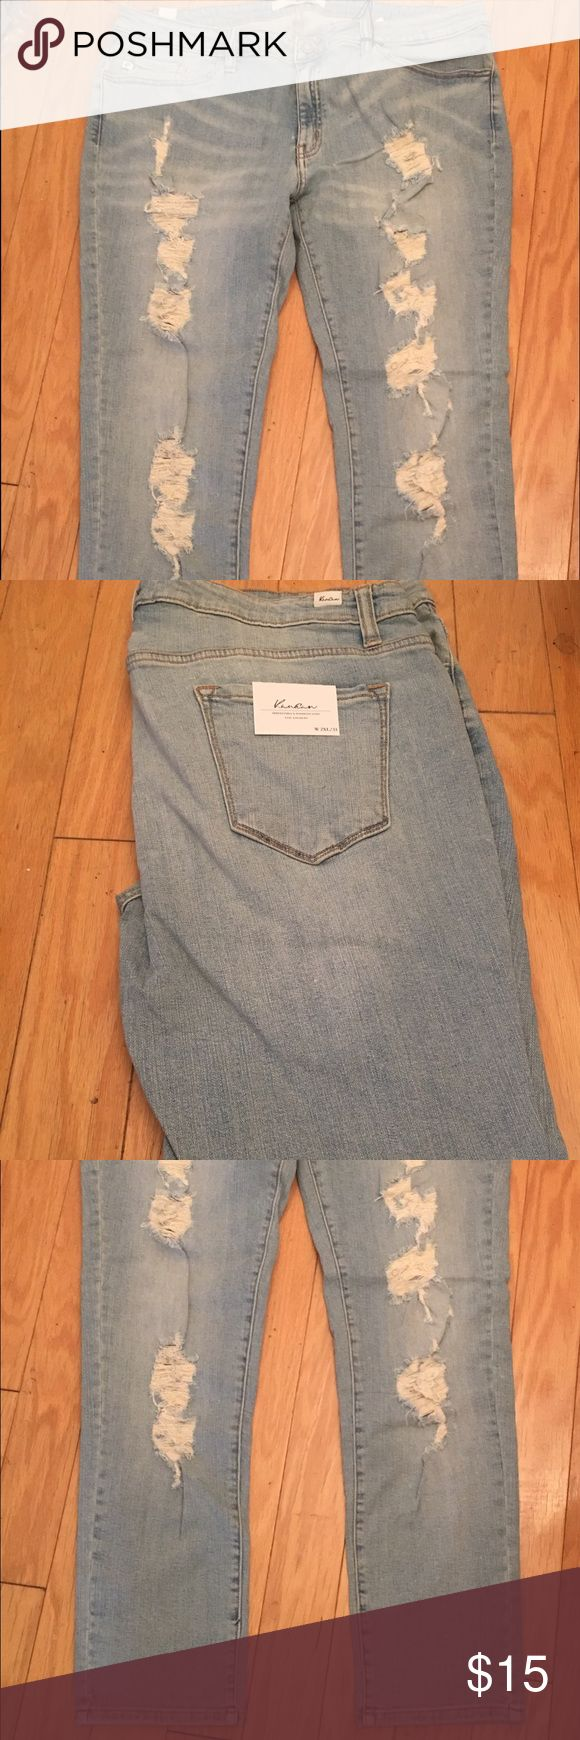 Plus size women distressed jeans brand new New Jeans